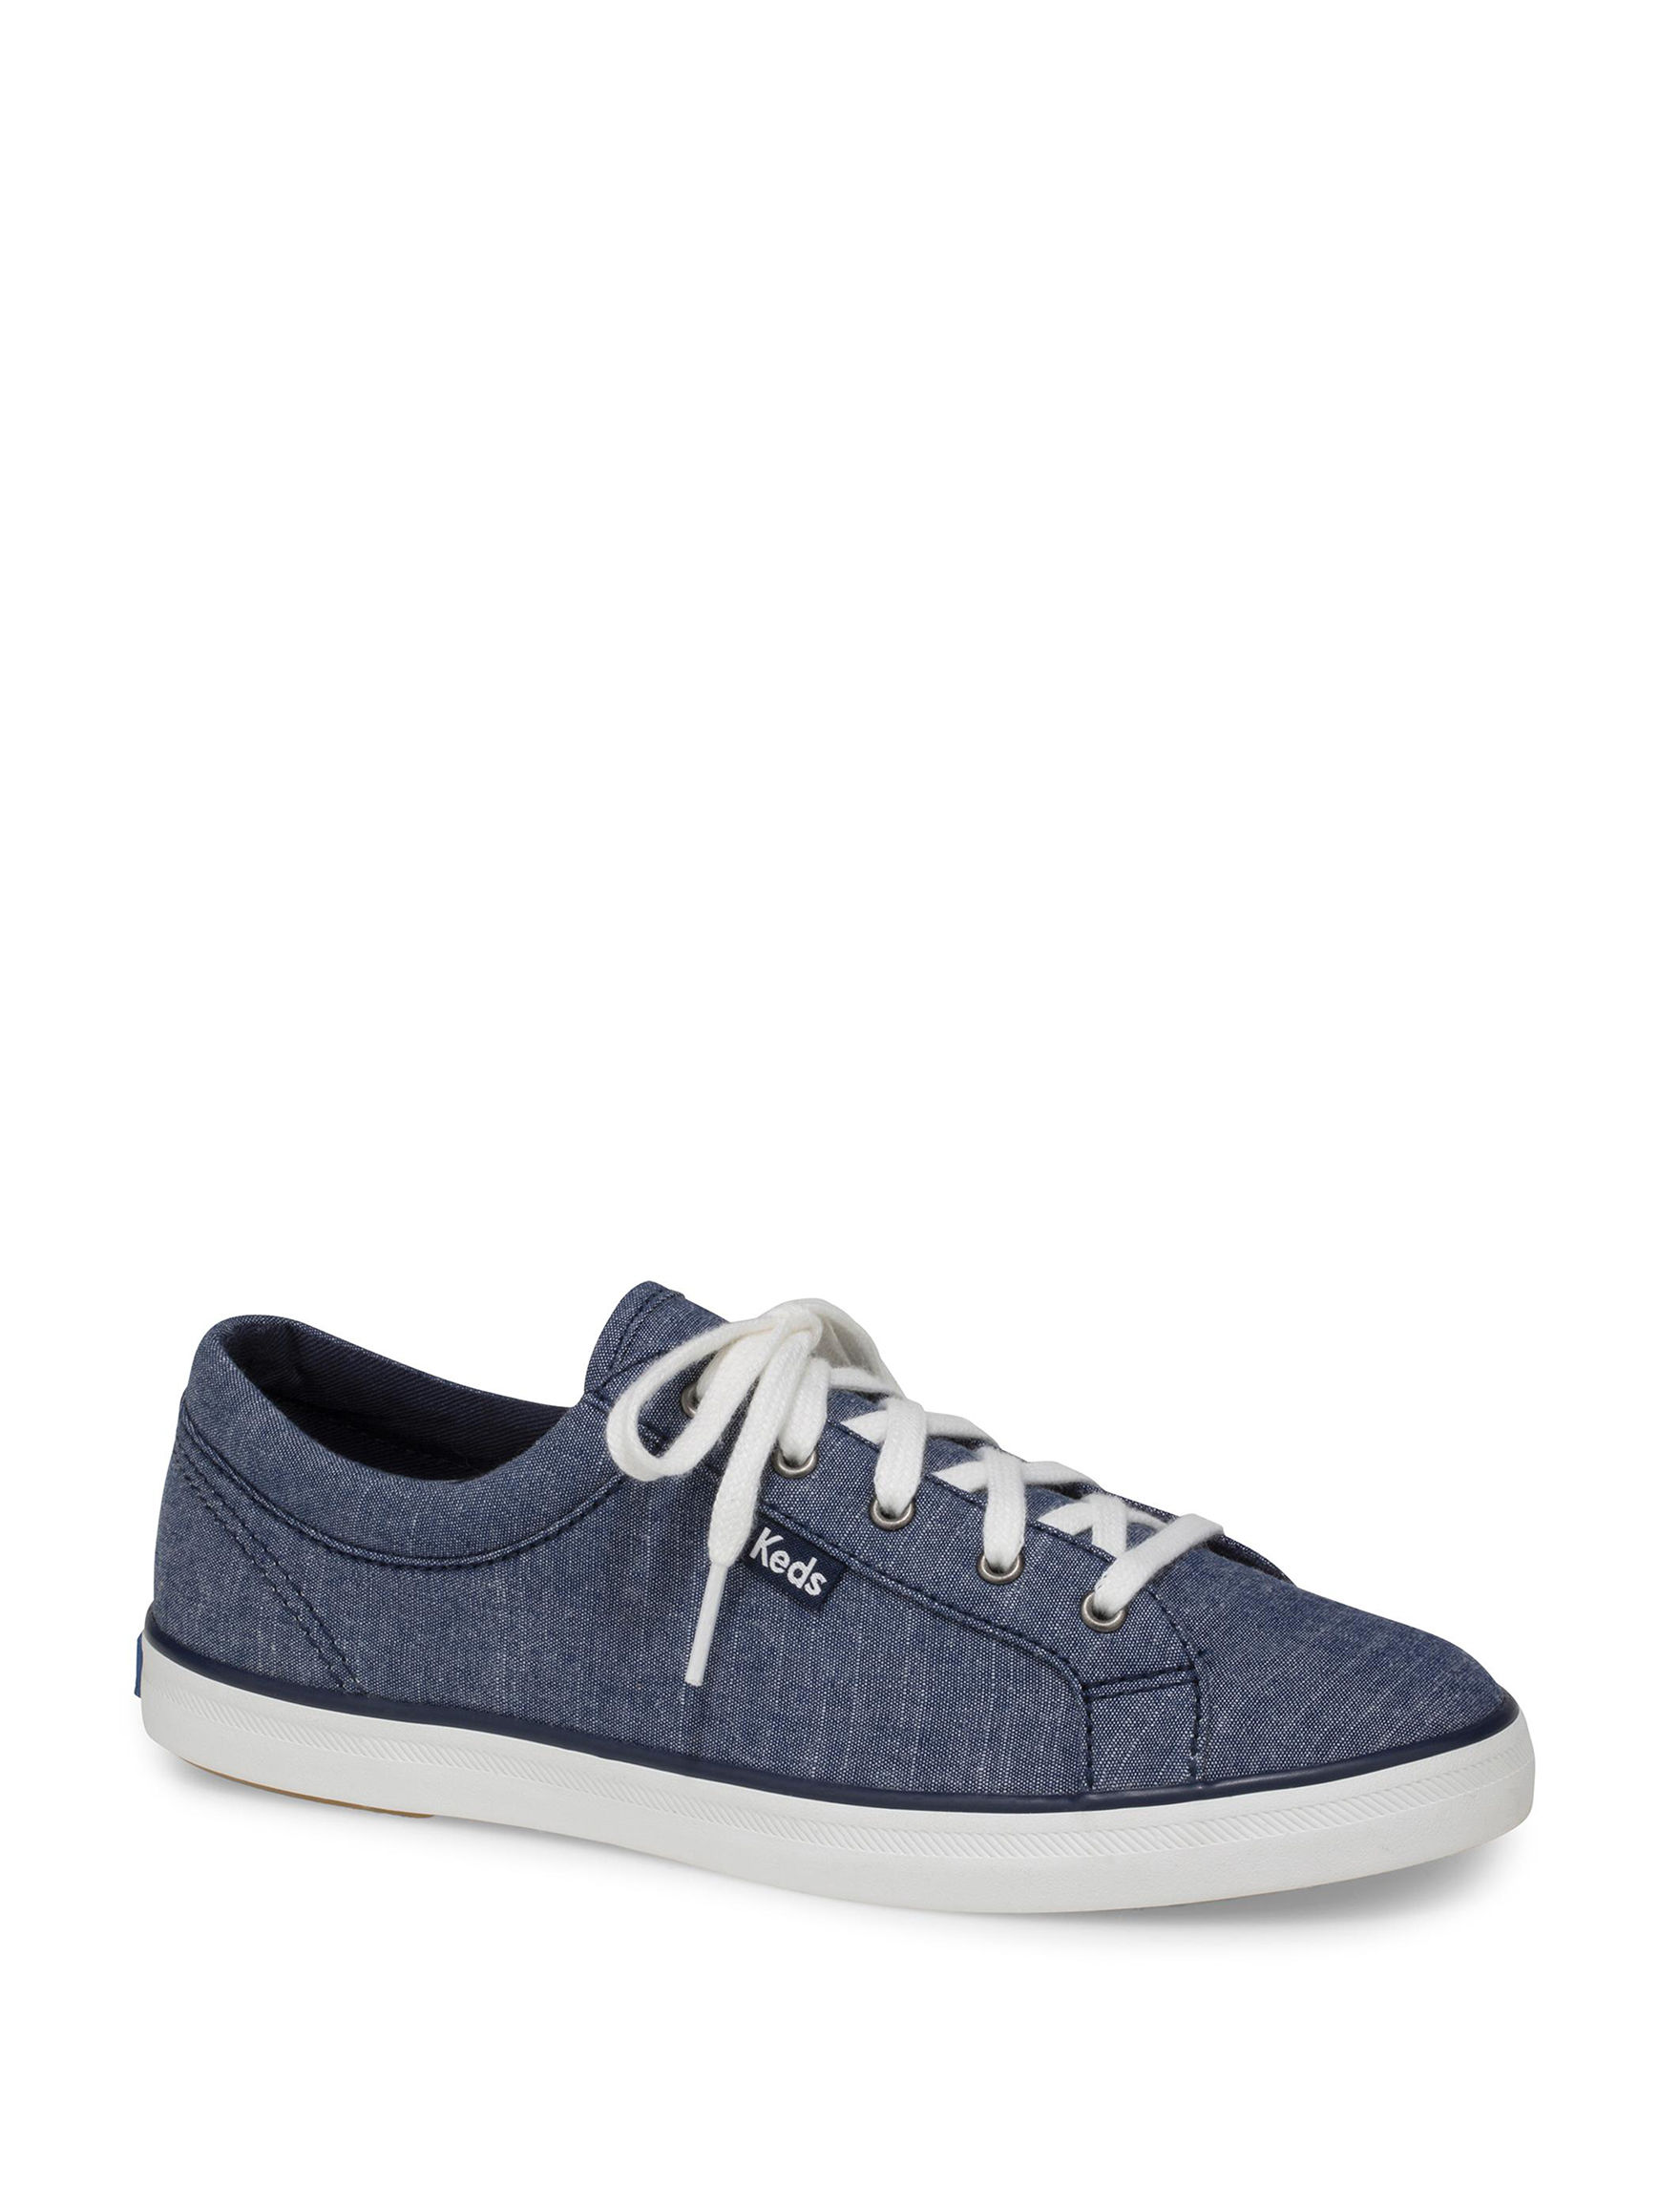 Keds Navy Comfort Shoes